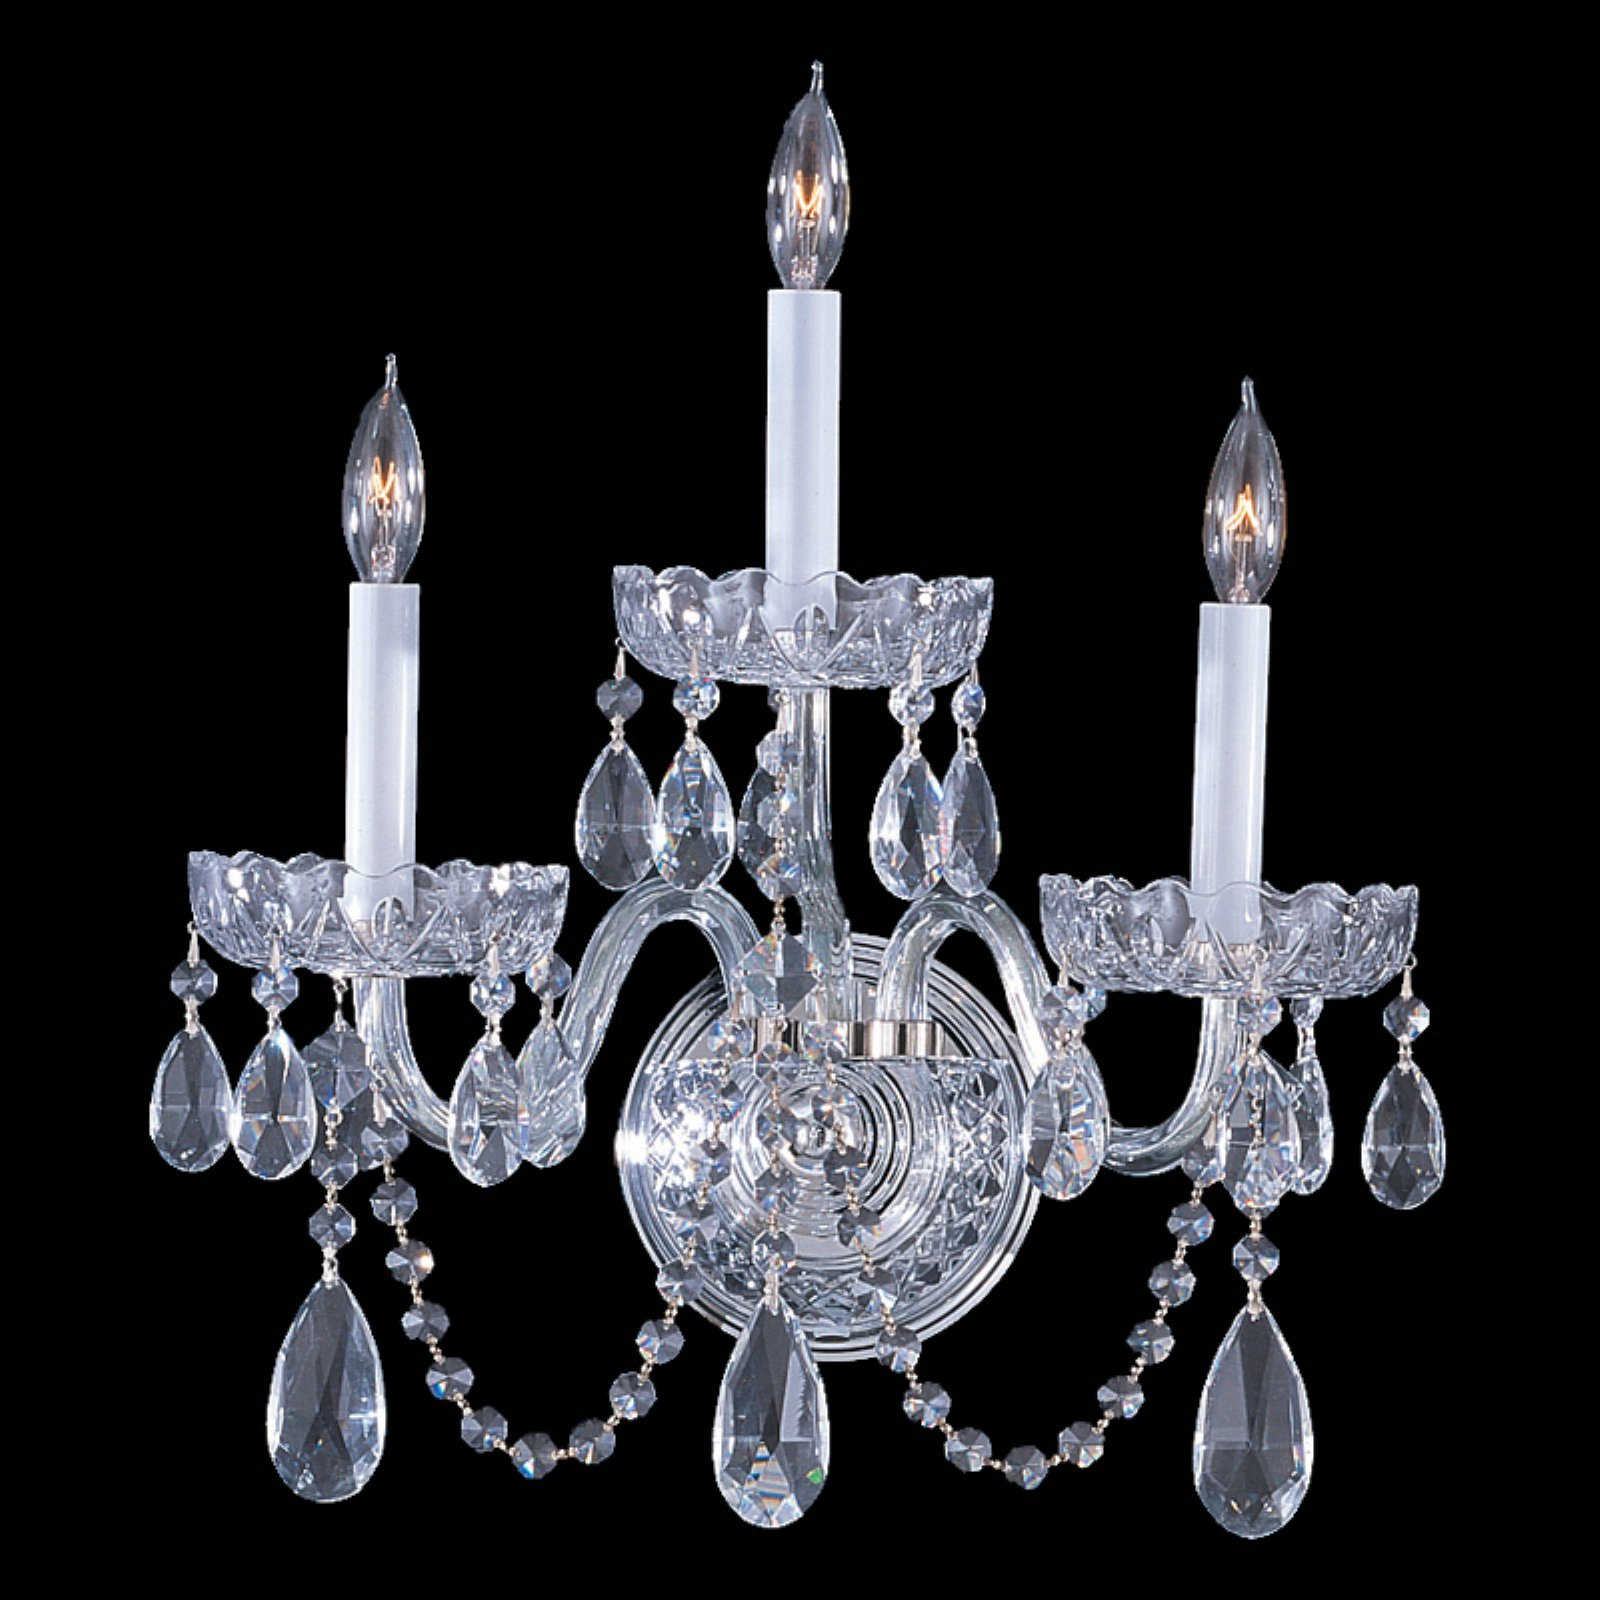 Crystorama 1033-CH-CL-S Traditional Swarovski Elements Crystal Wall Sconce 15W in. by Crystorama